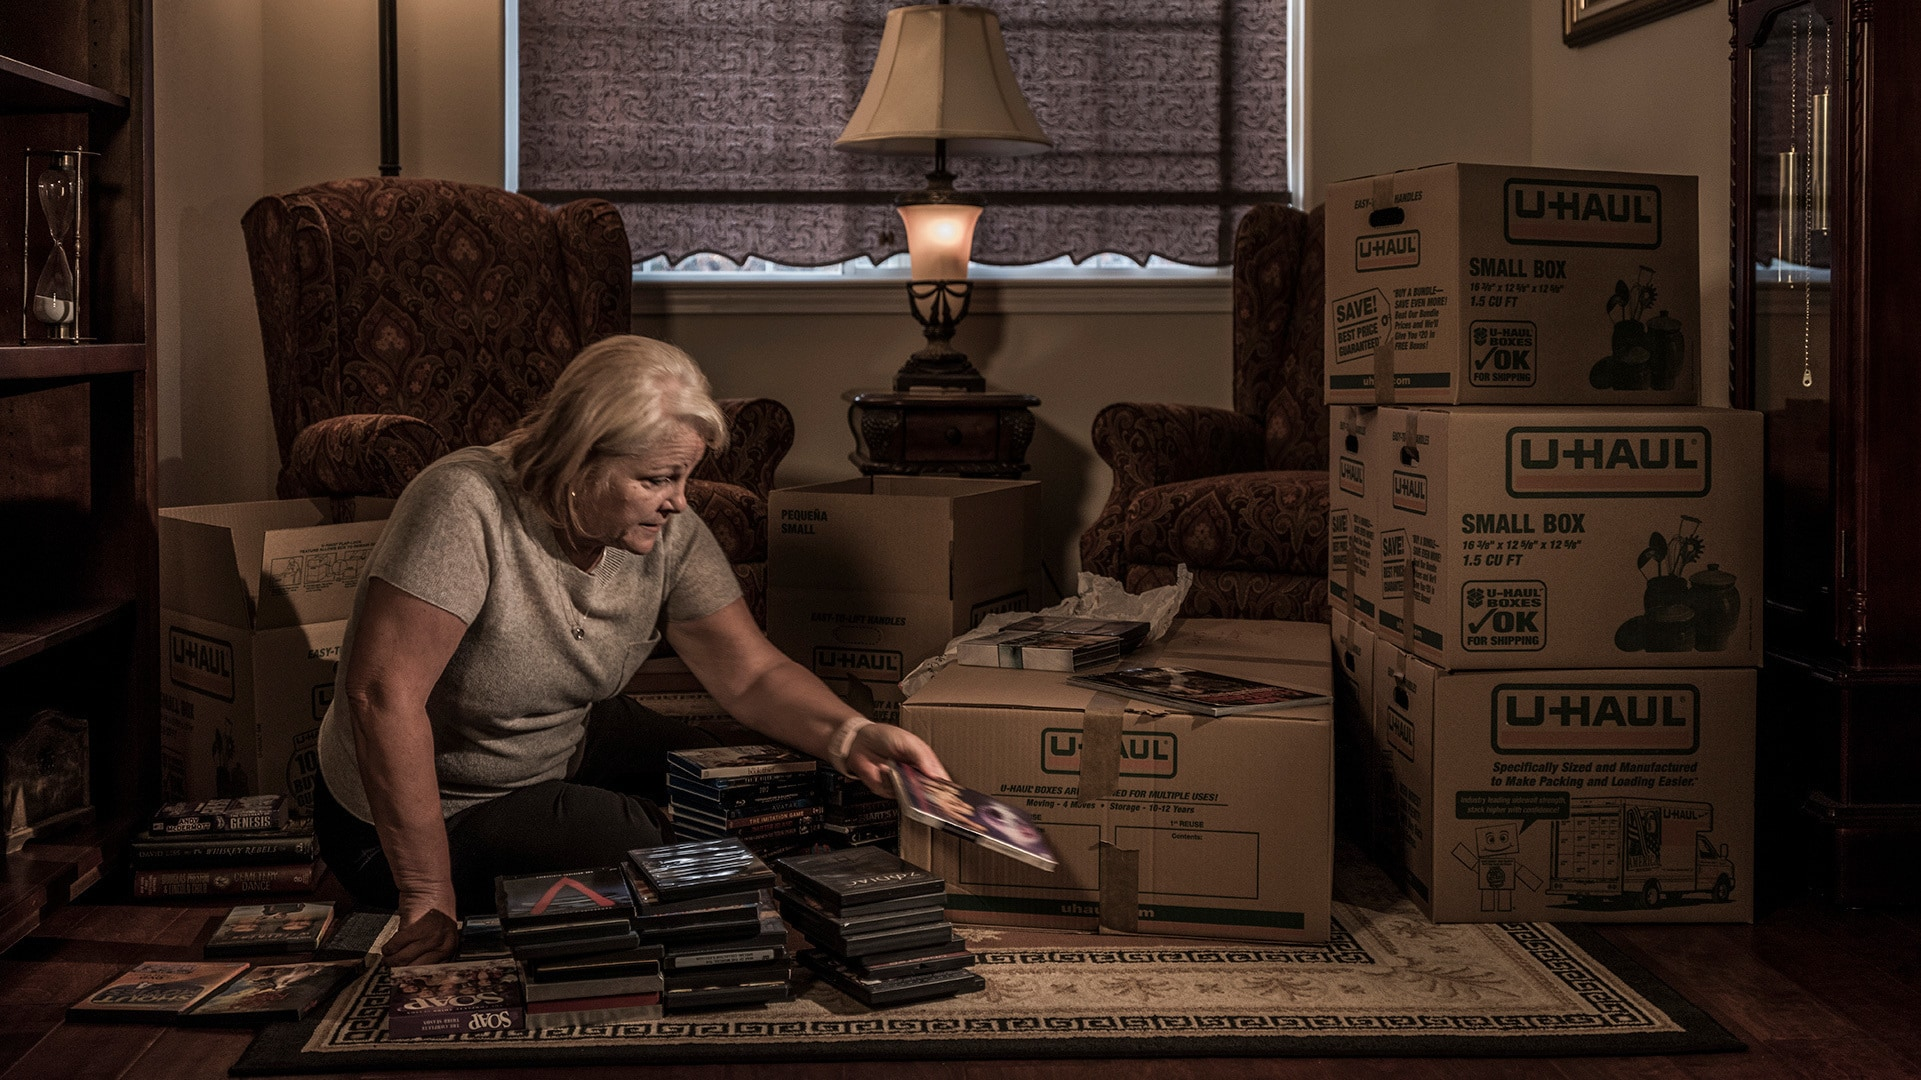 Michelle John, the emeritus superintendent of Paradise Schools, as she packs her home and prepares to move away from the town in the wake of the fire. (Photo by National Geographic/Pete Muller)